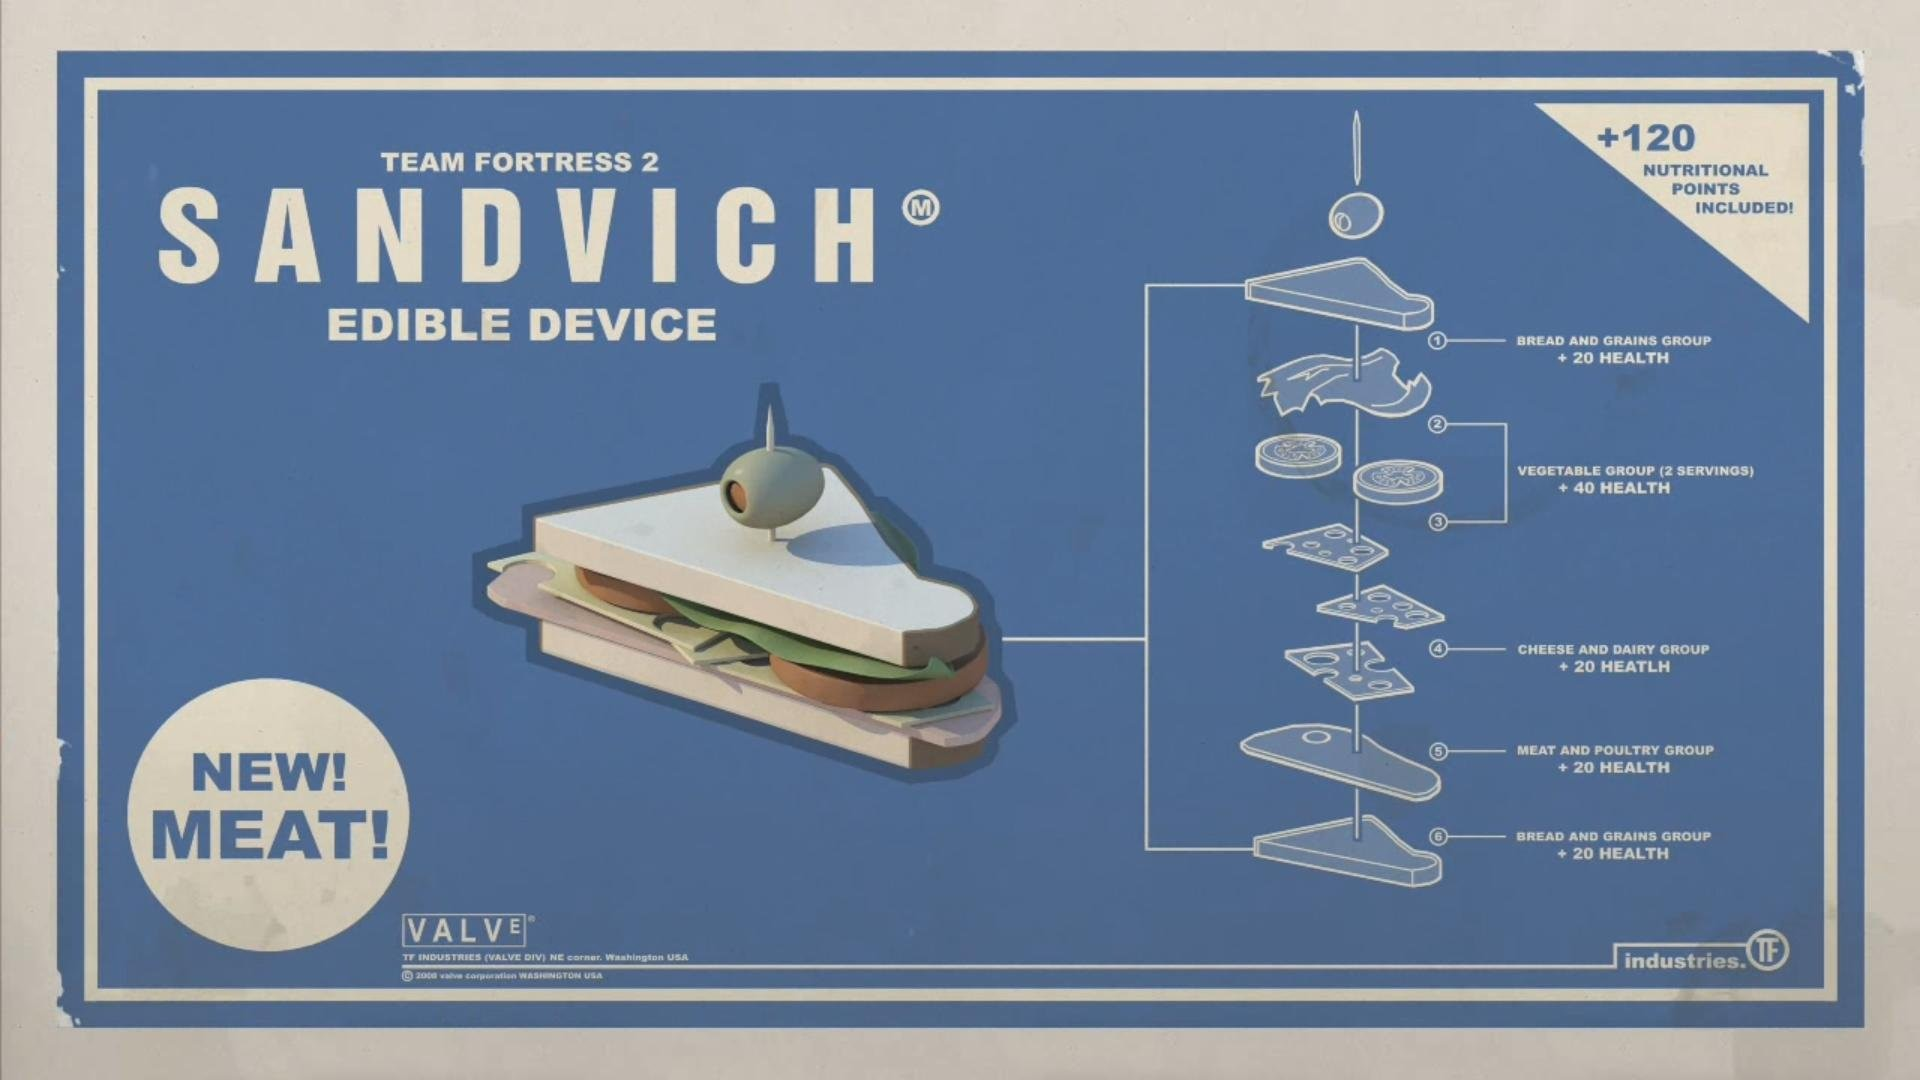 1920x1080 ... wallpapers hd; funny heavy sandvich sandwiches team fortress 2  walldevil ...